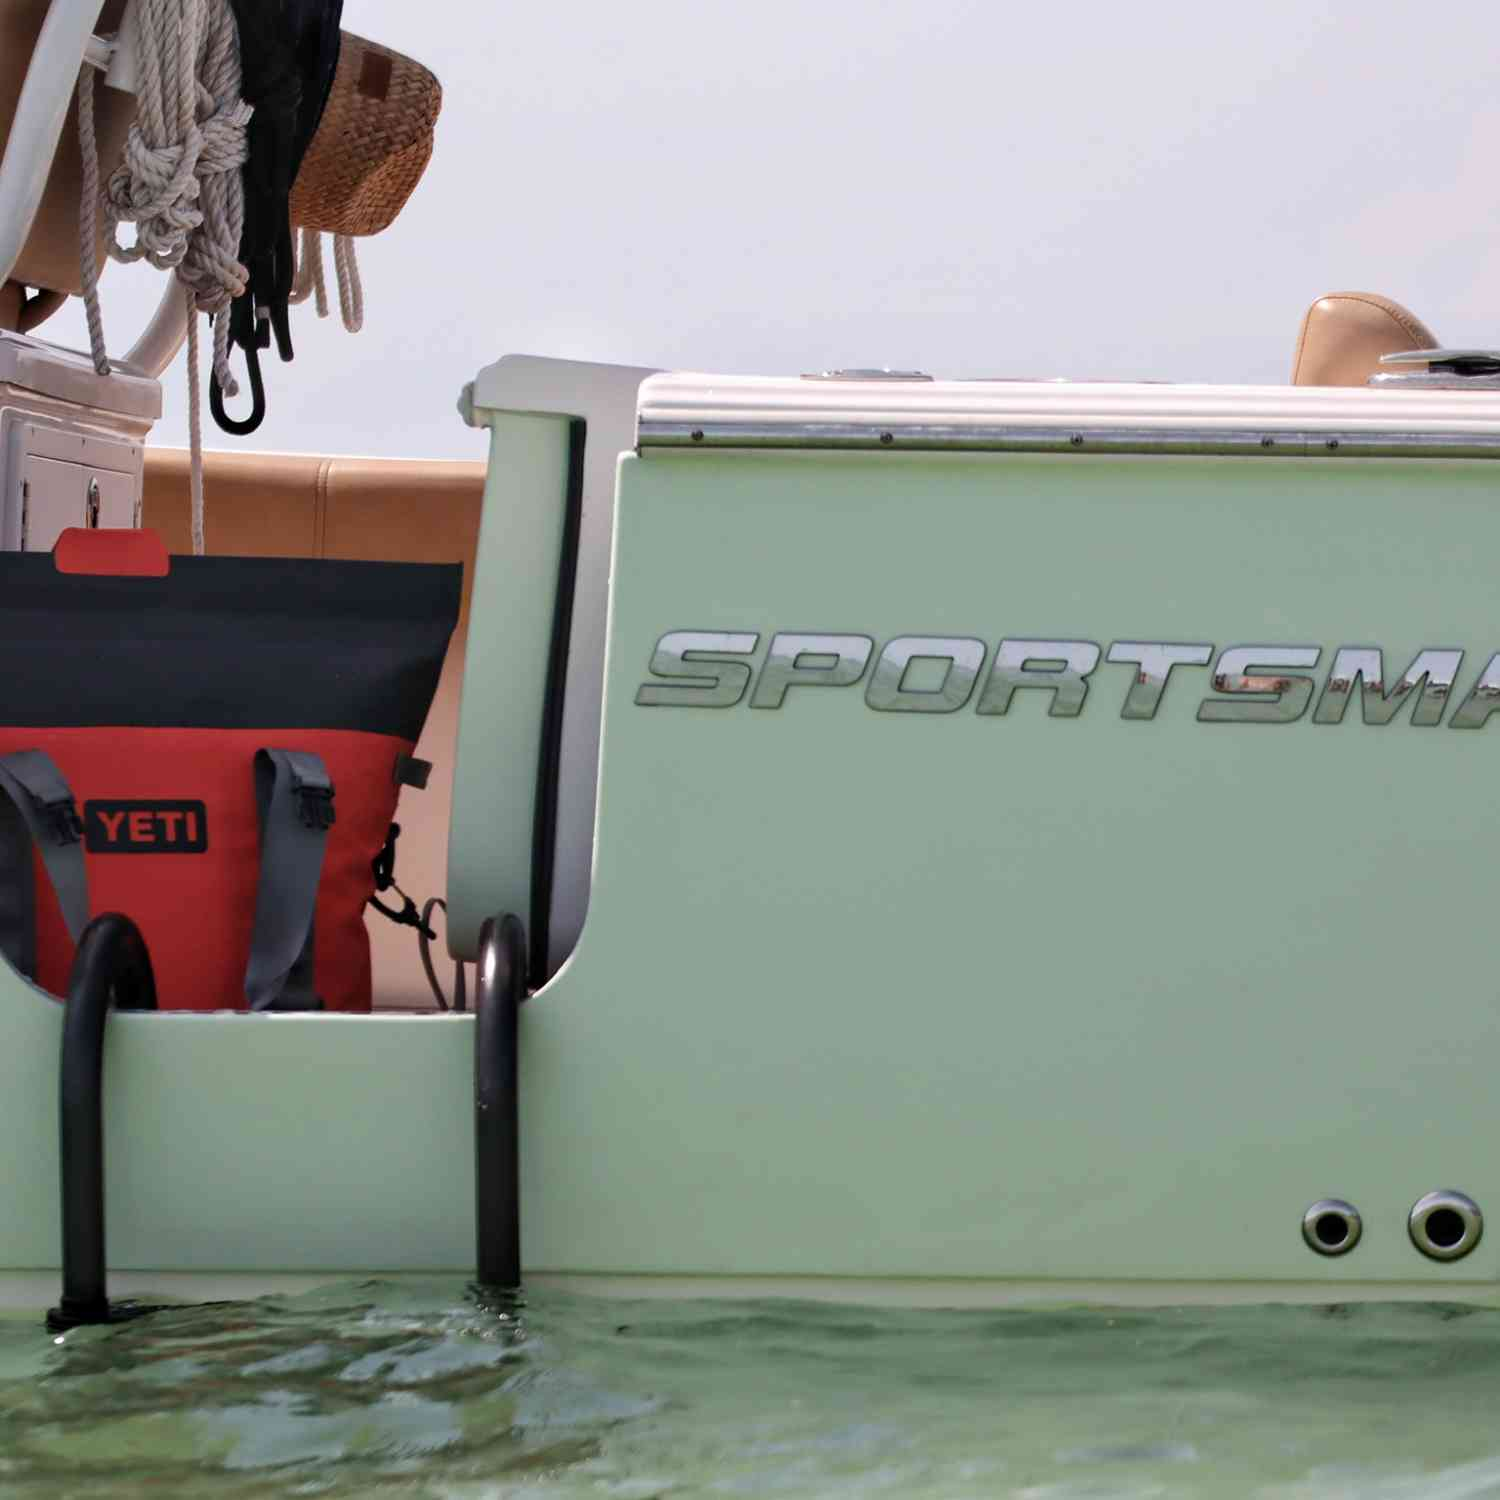 Title: Port Cooler - On board their Sportsman Open 282 Center Console - Location: Keywaadin Island. Participating in the Photo Contest #SportsmanSeptember2020